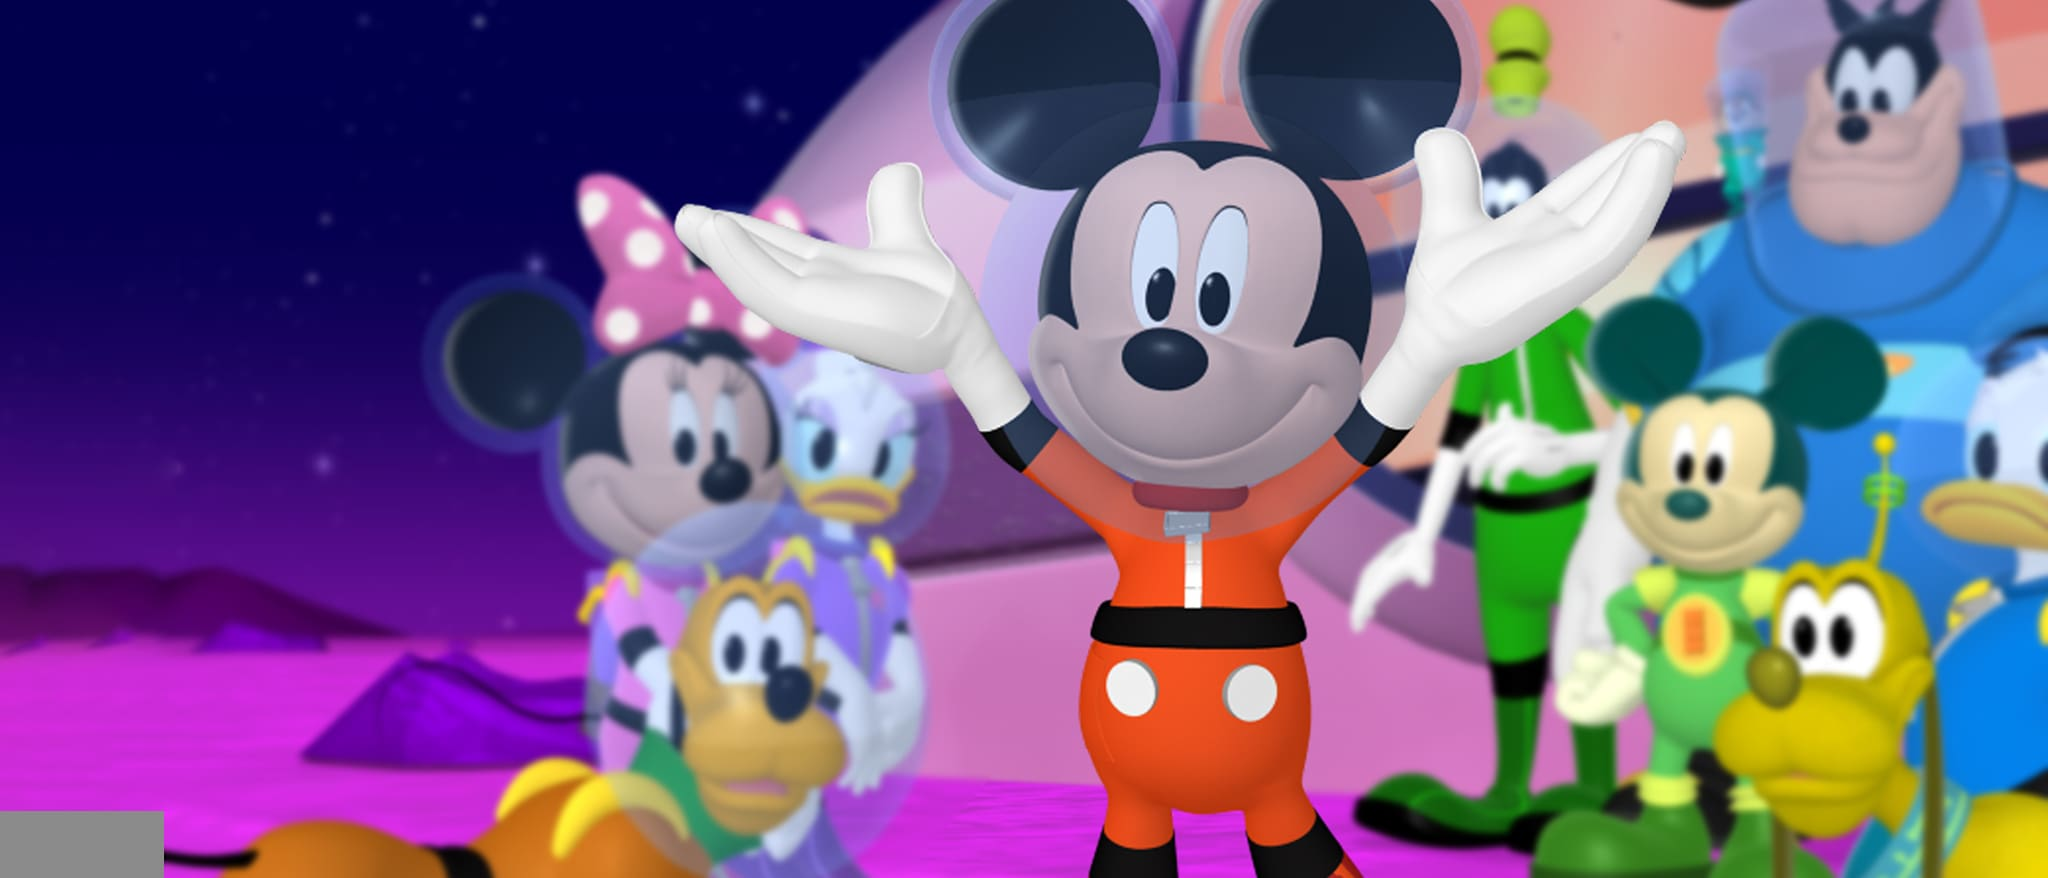 What animal is Pete from Mickey Mouse Clubhouse?